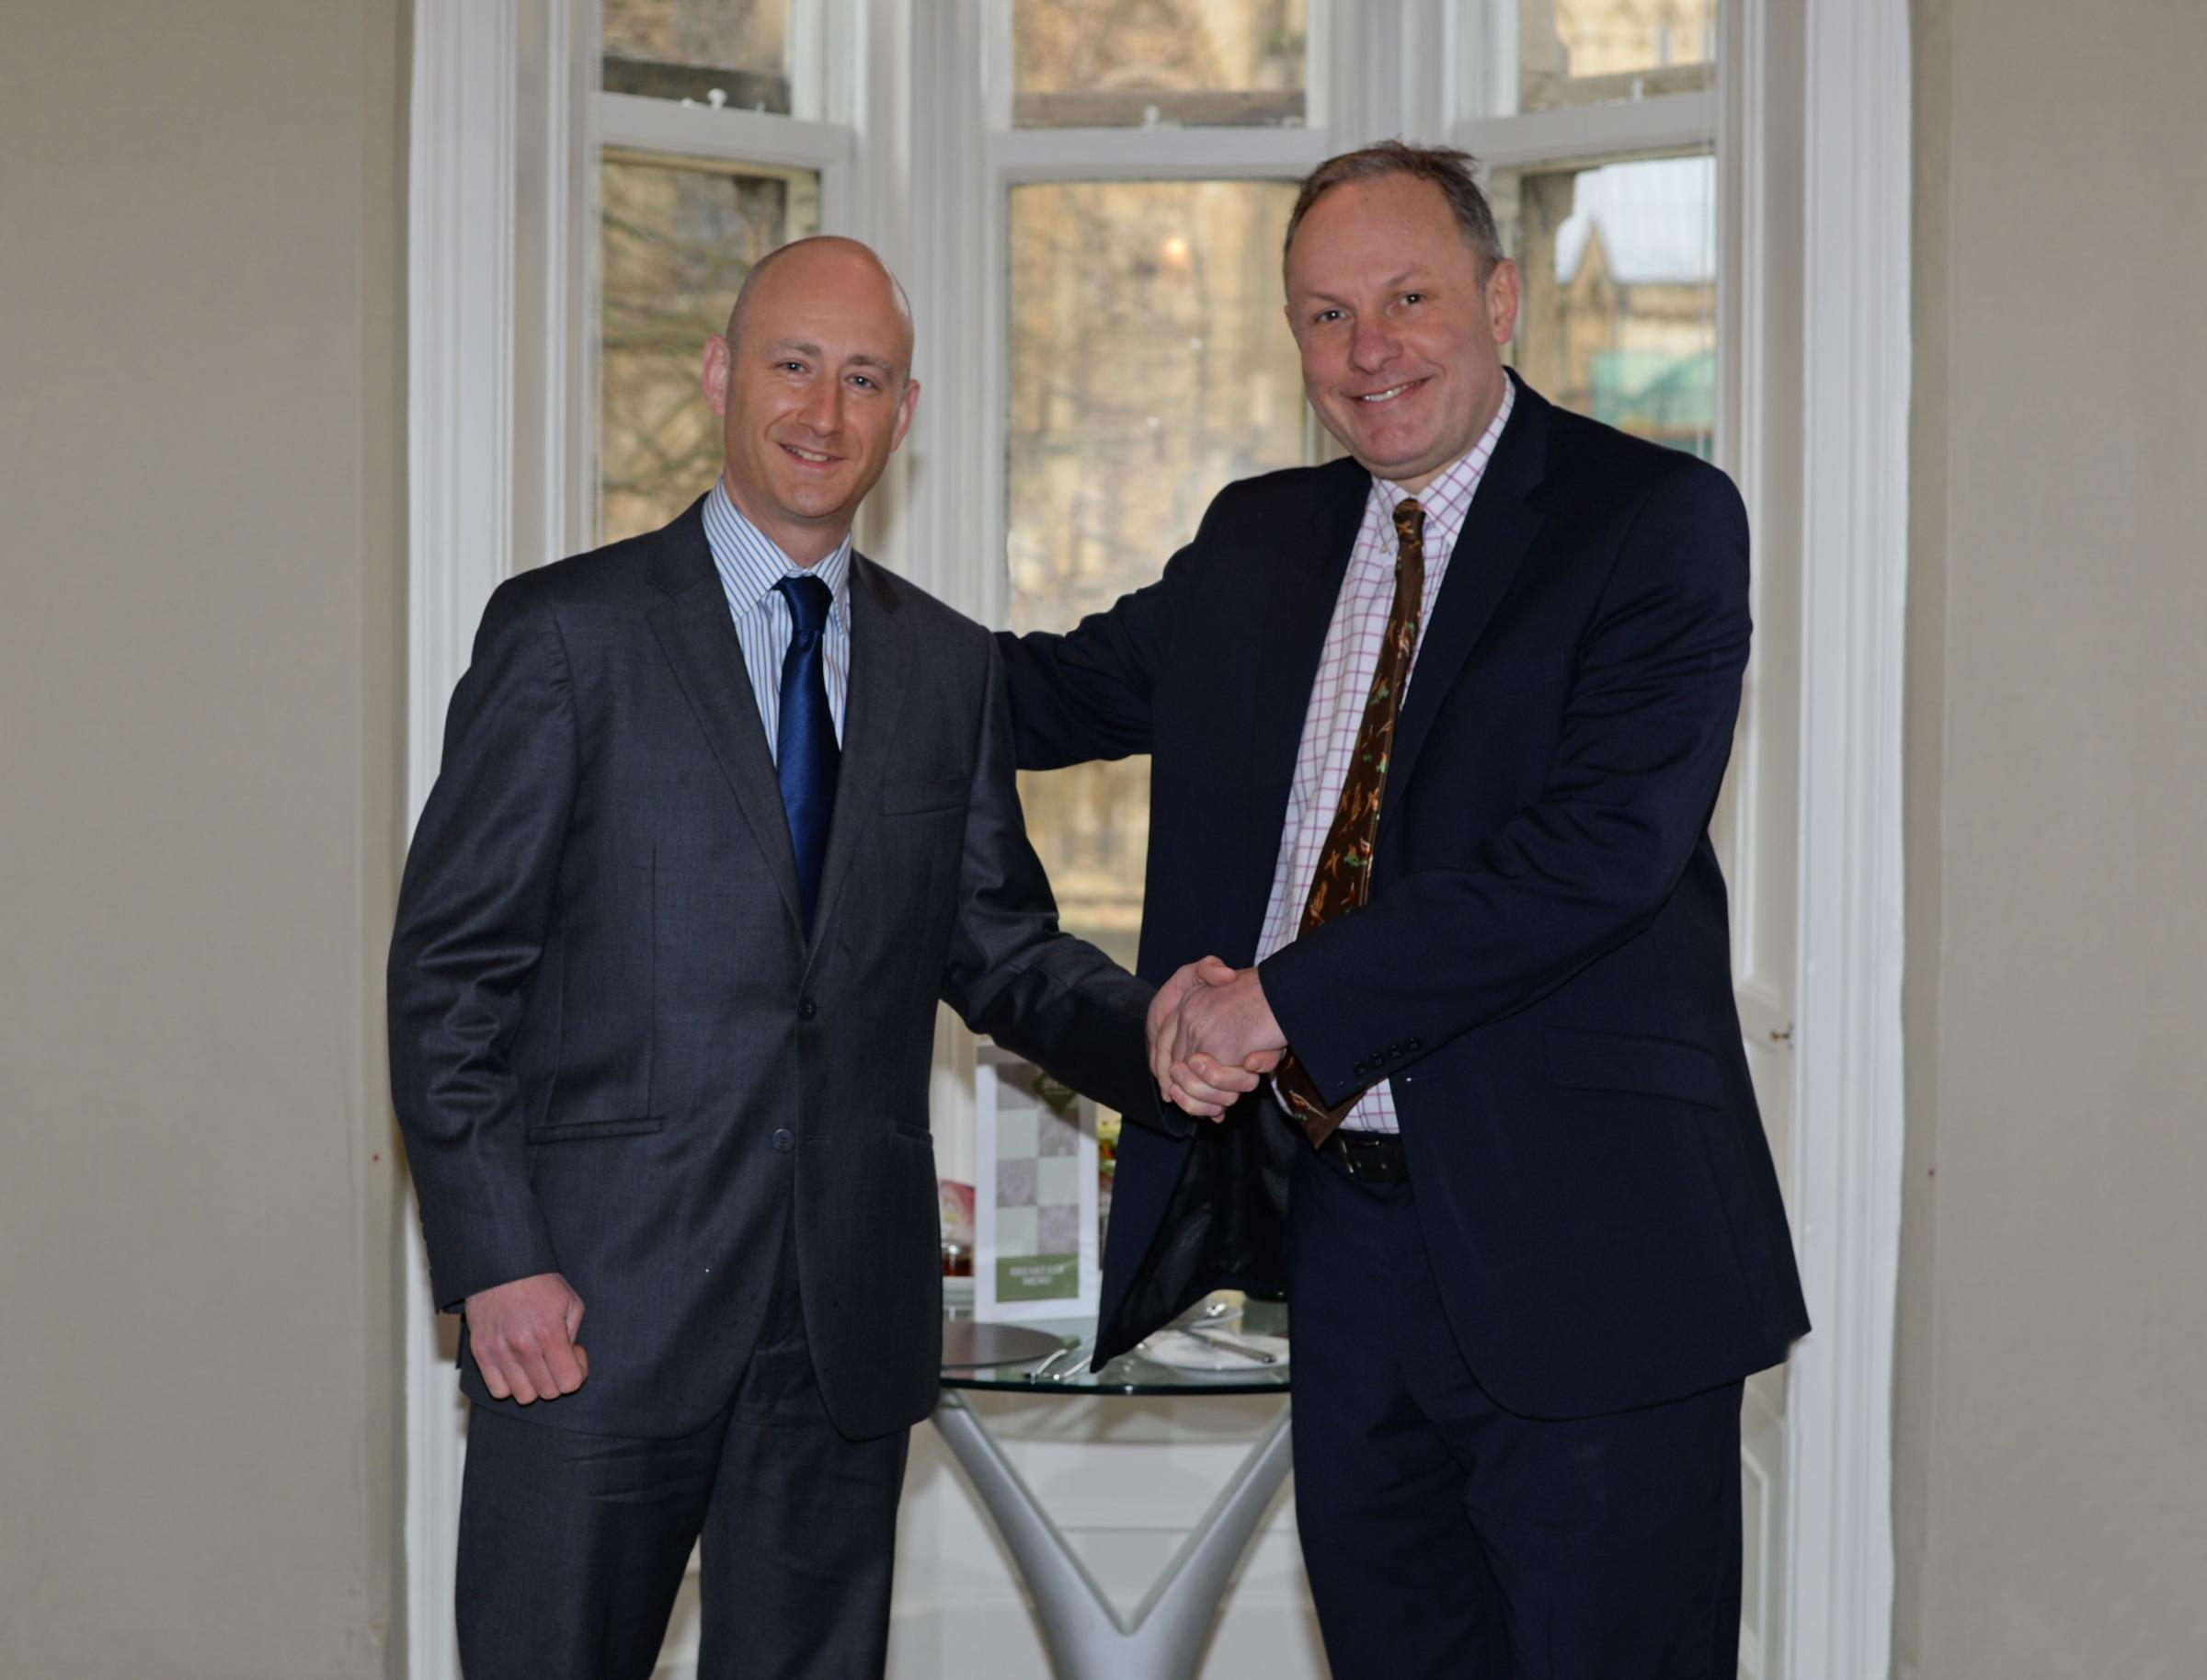 Andrew Lowson, left, being welcomed to the role of York BID executive director by Adam Sinclair, chairman of the BID company